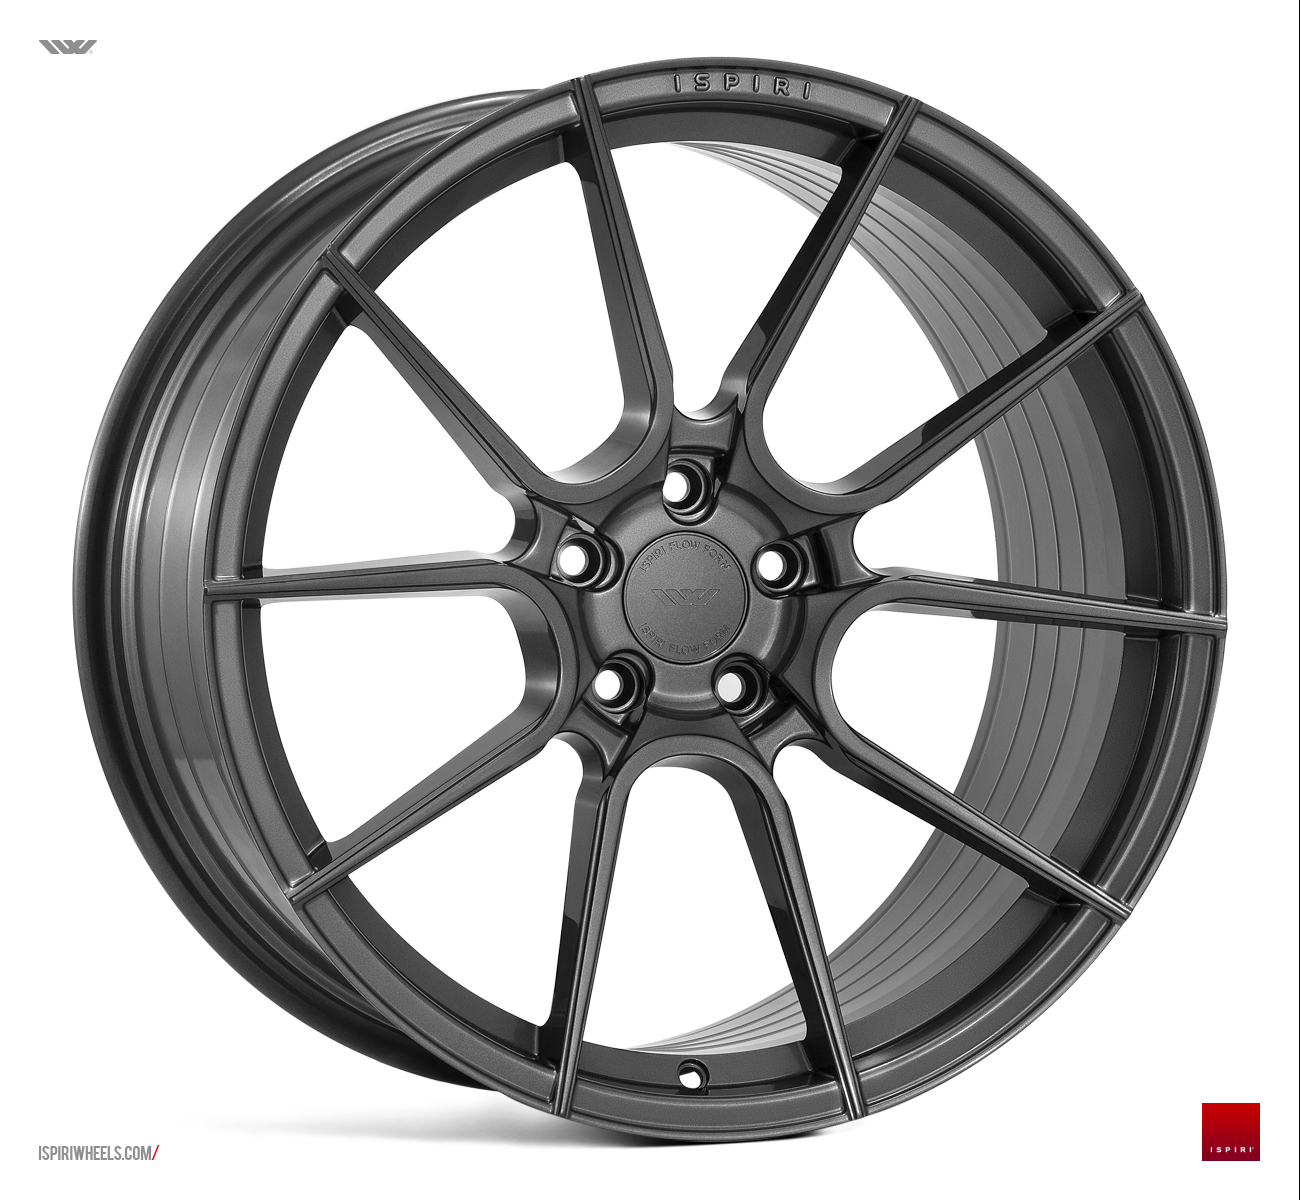 "NEW 20"" ISPIRI FFR6 TWIN 5 SPOKE ALLOYS IN CARBON GRAPHITE, WIDER 10"" OR 10.5"" REAR"